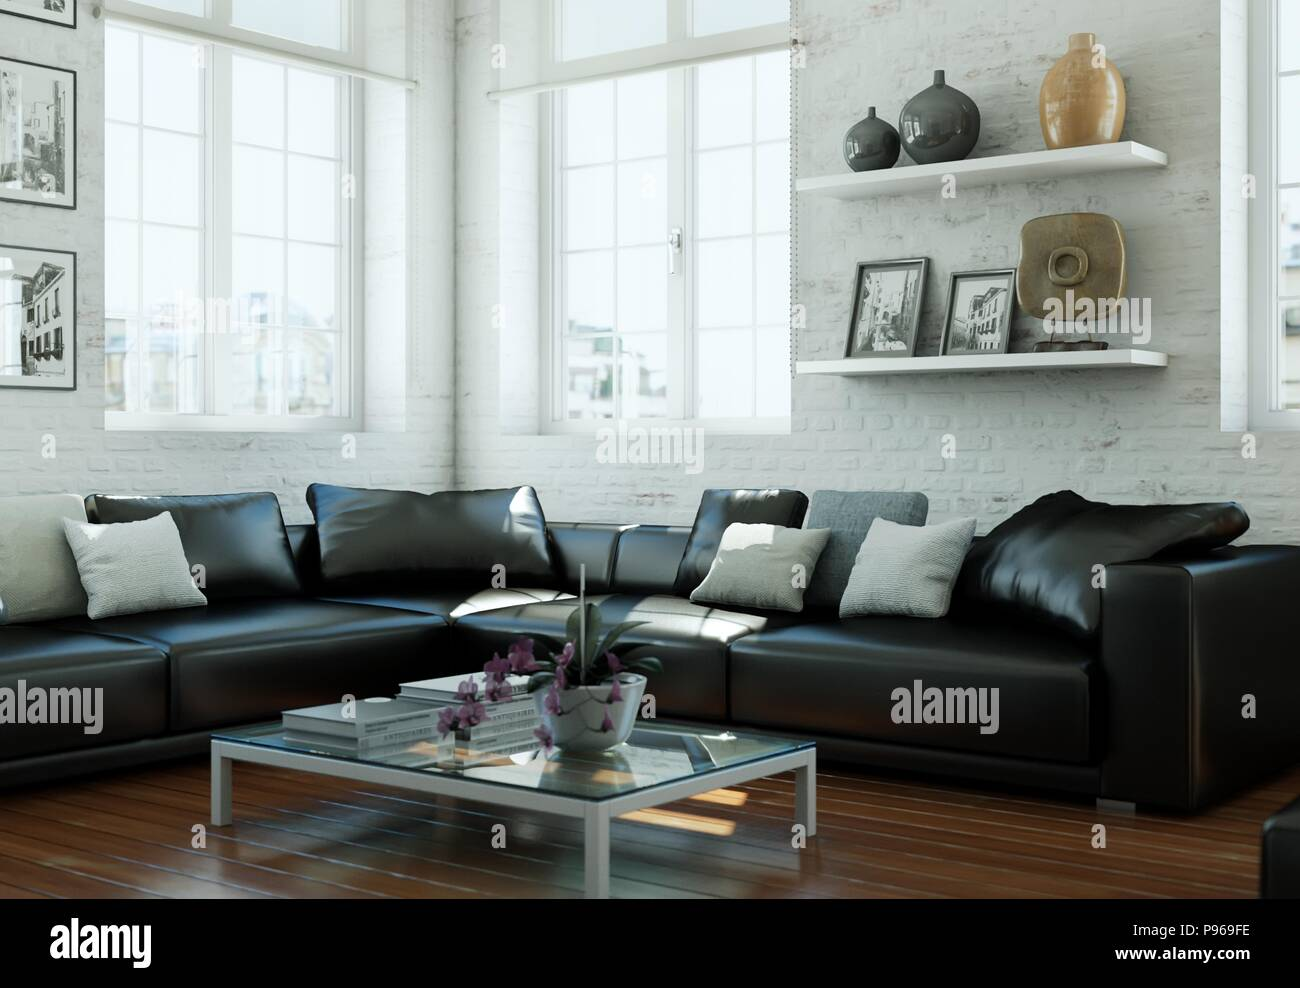 Modern Skandinavian Interior Design Living Room With Black Leather Couch Stock Photo Alamy